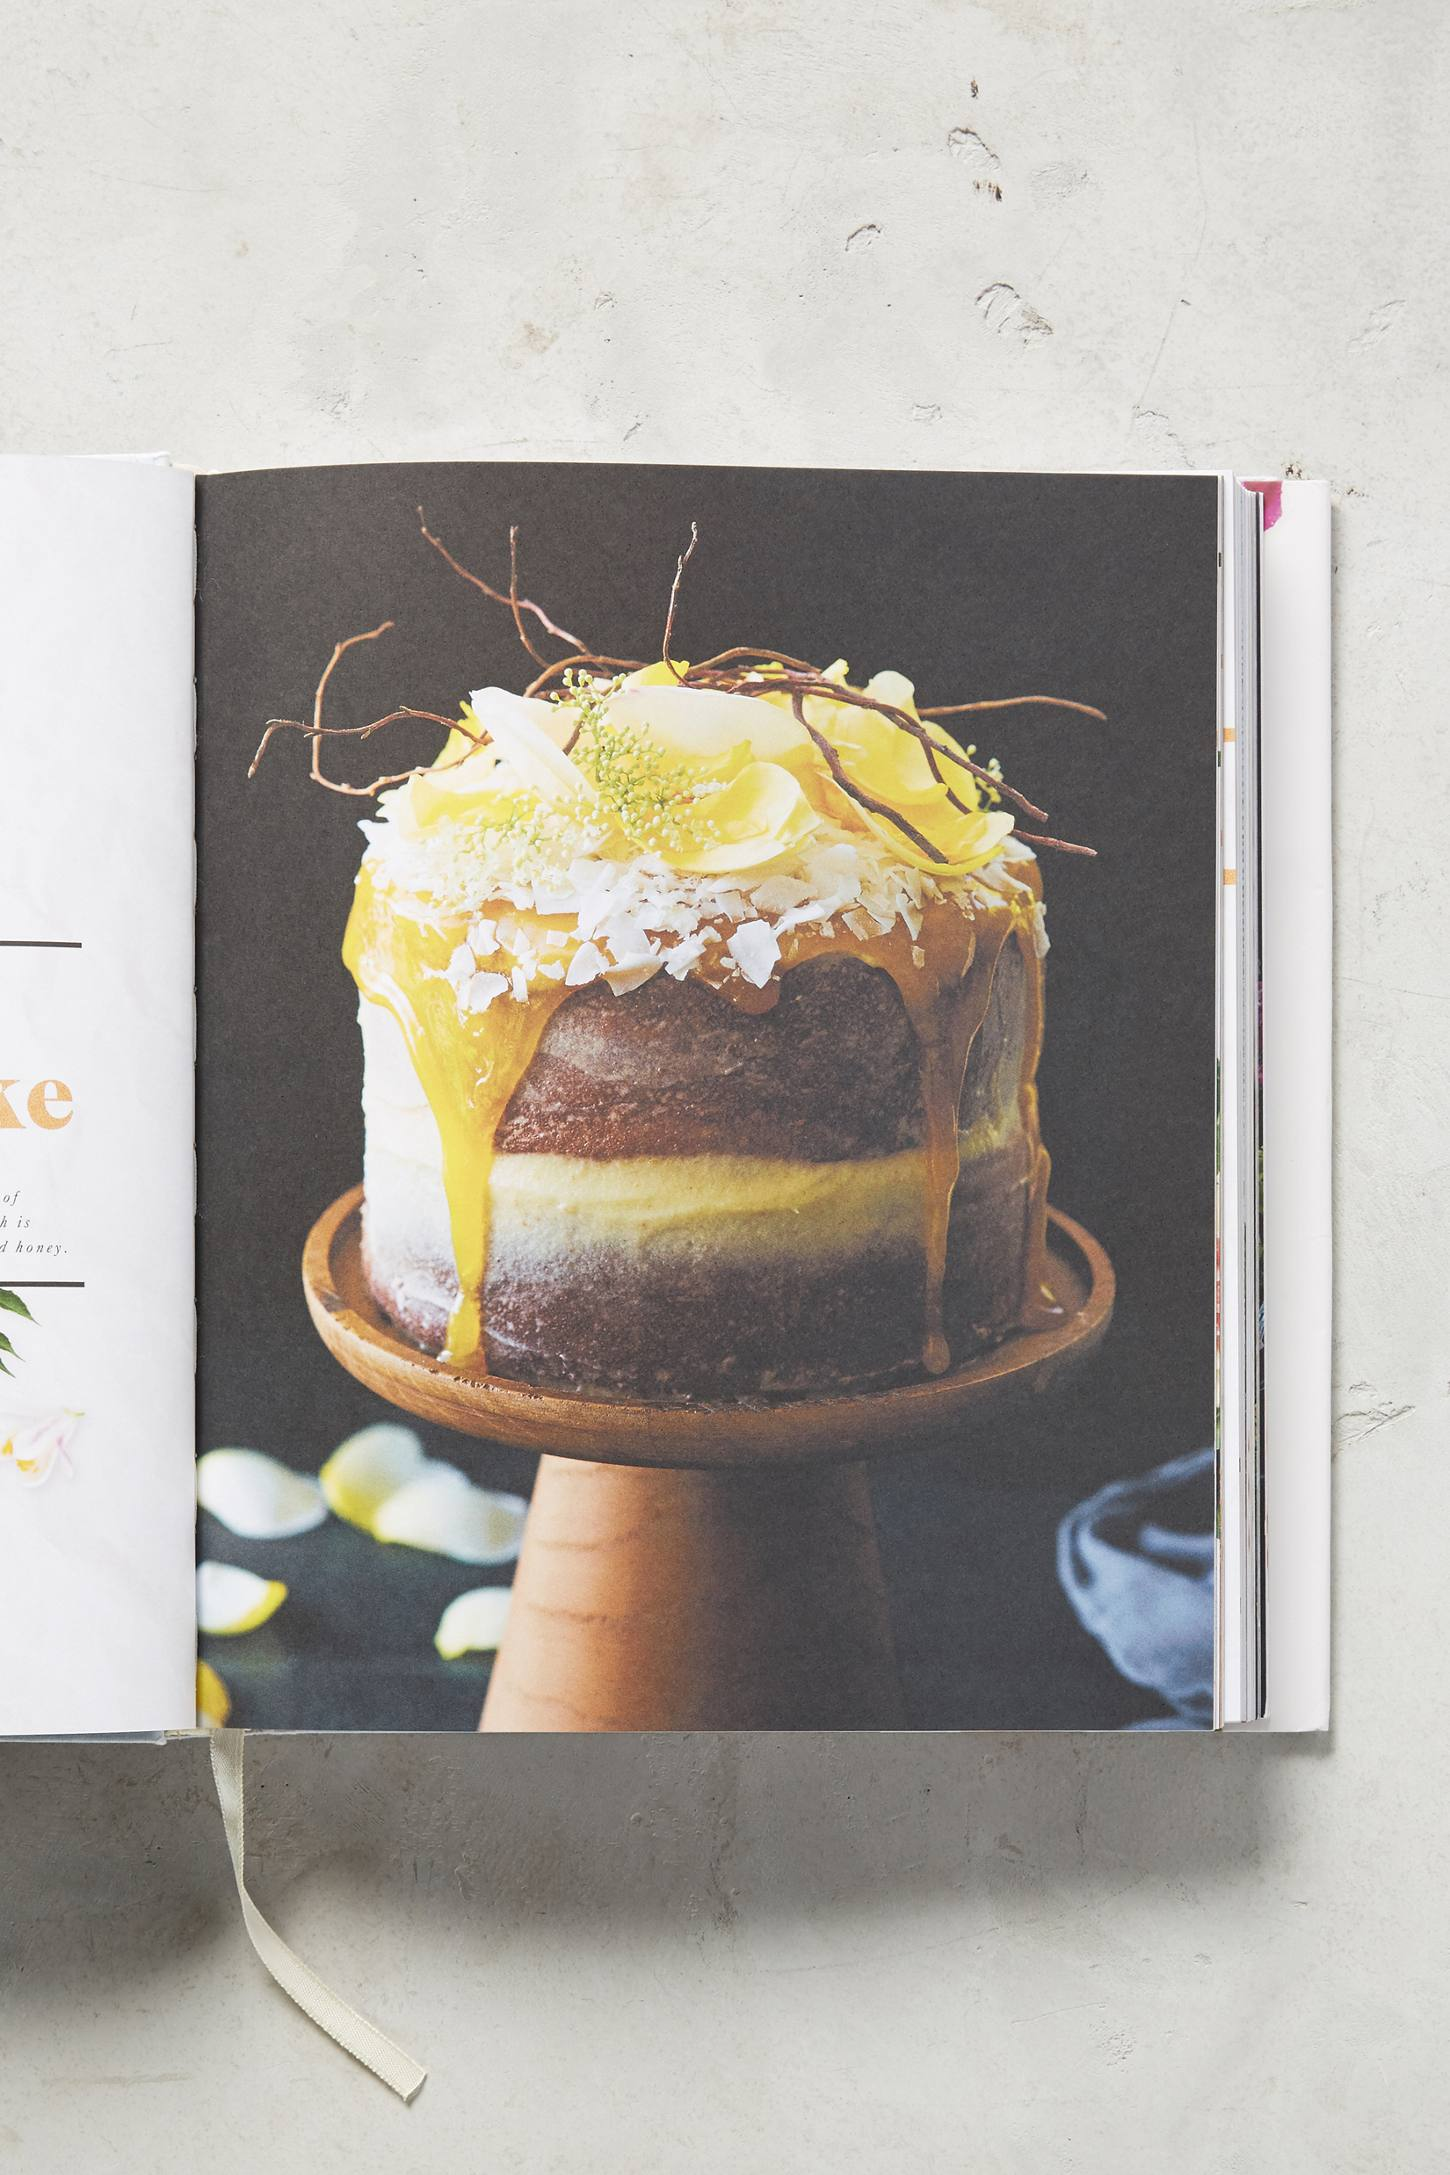 Slide View: 5: Naked Cakes